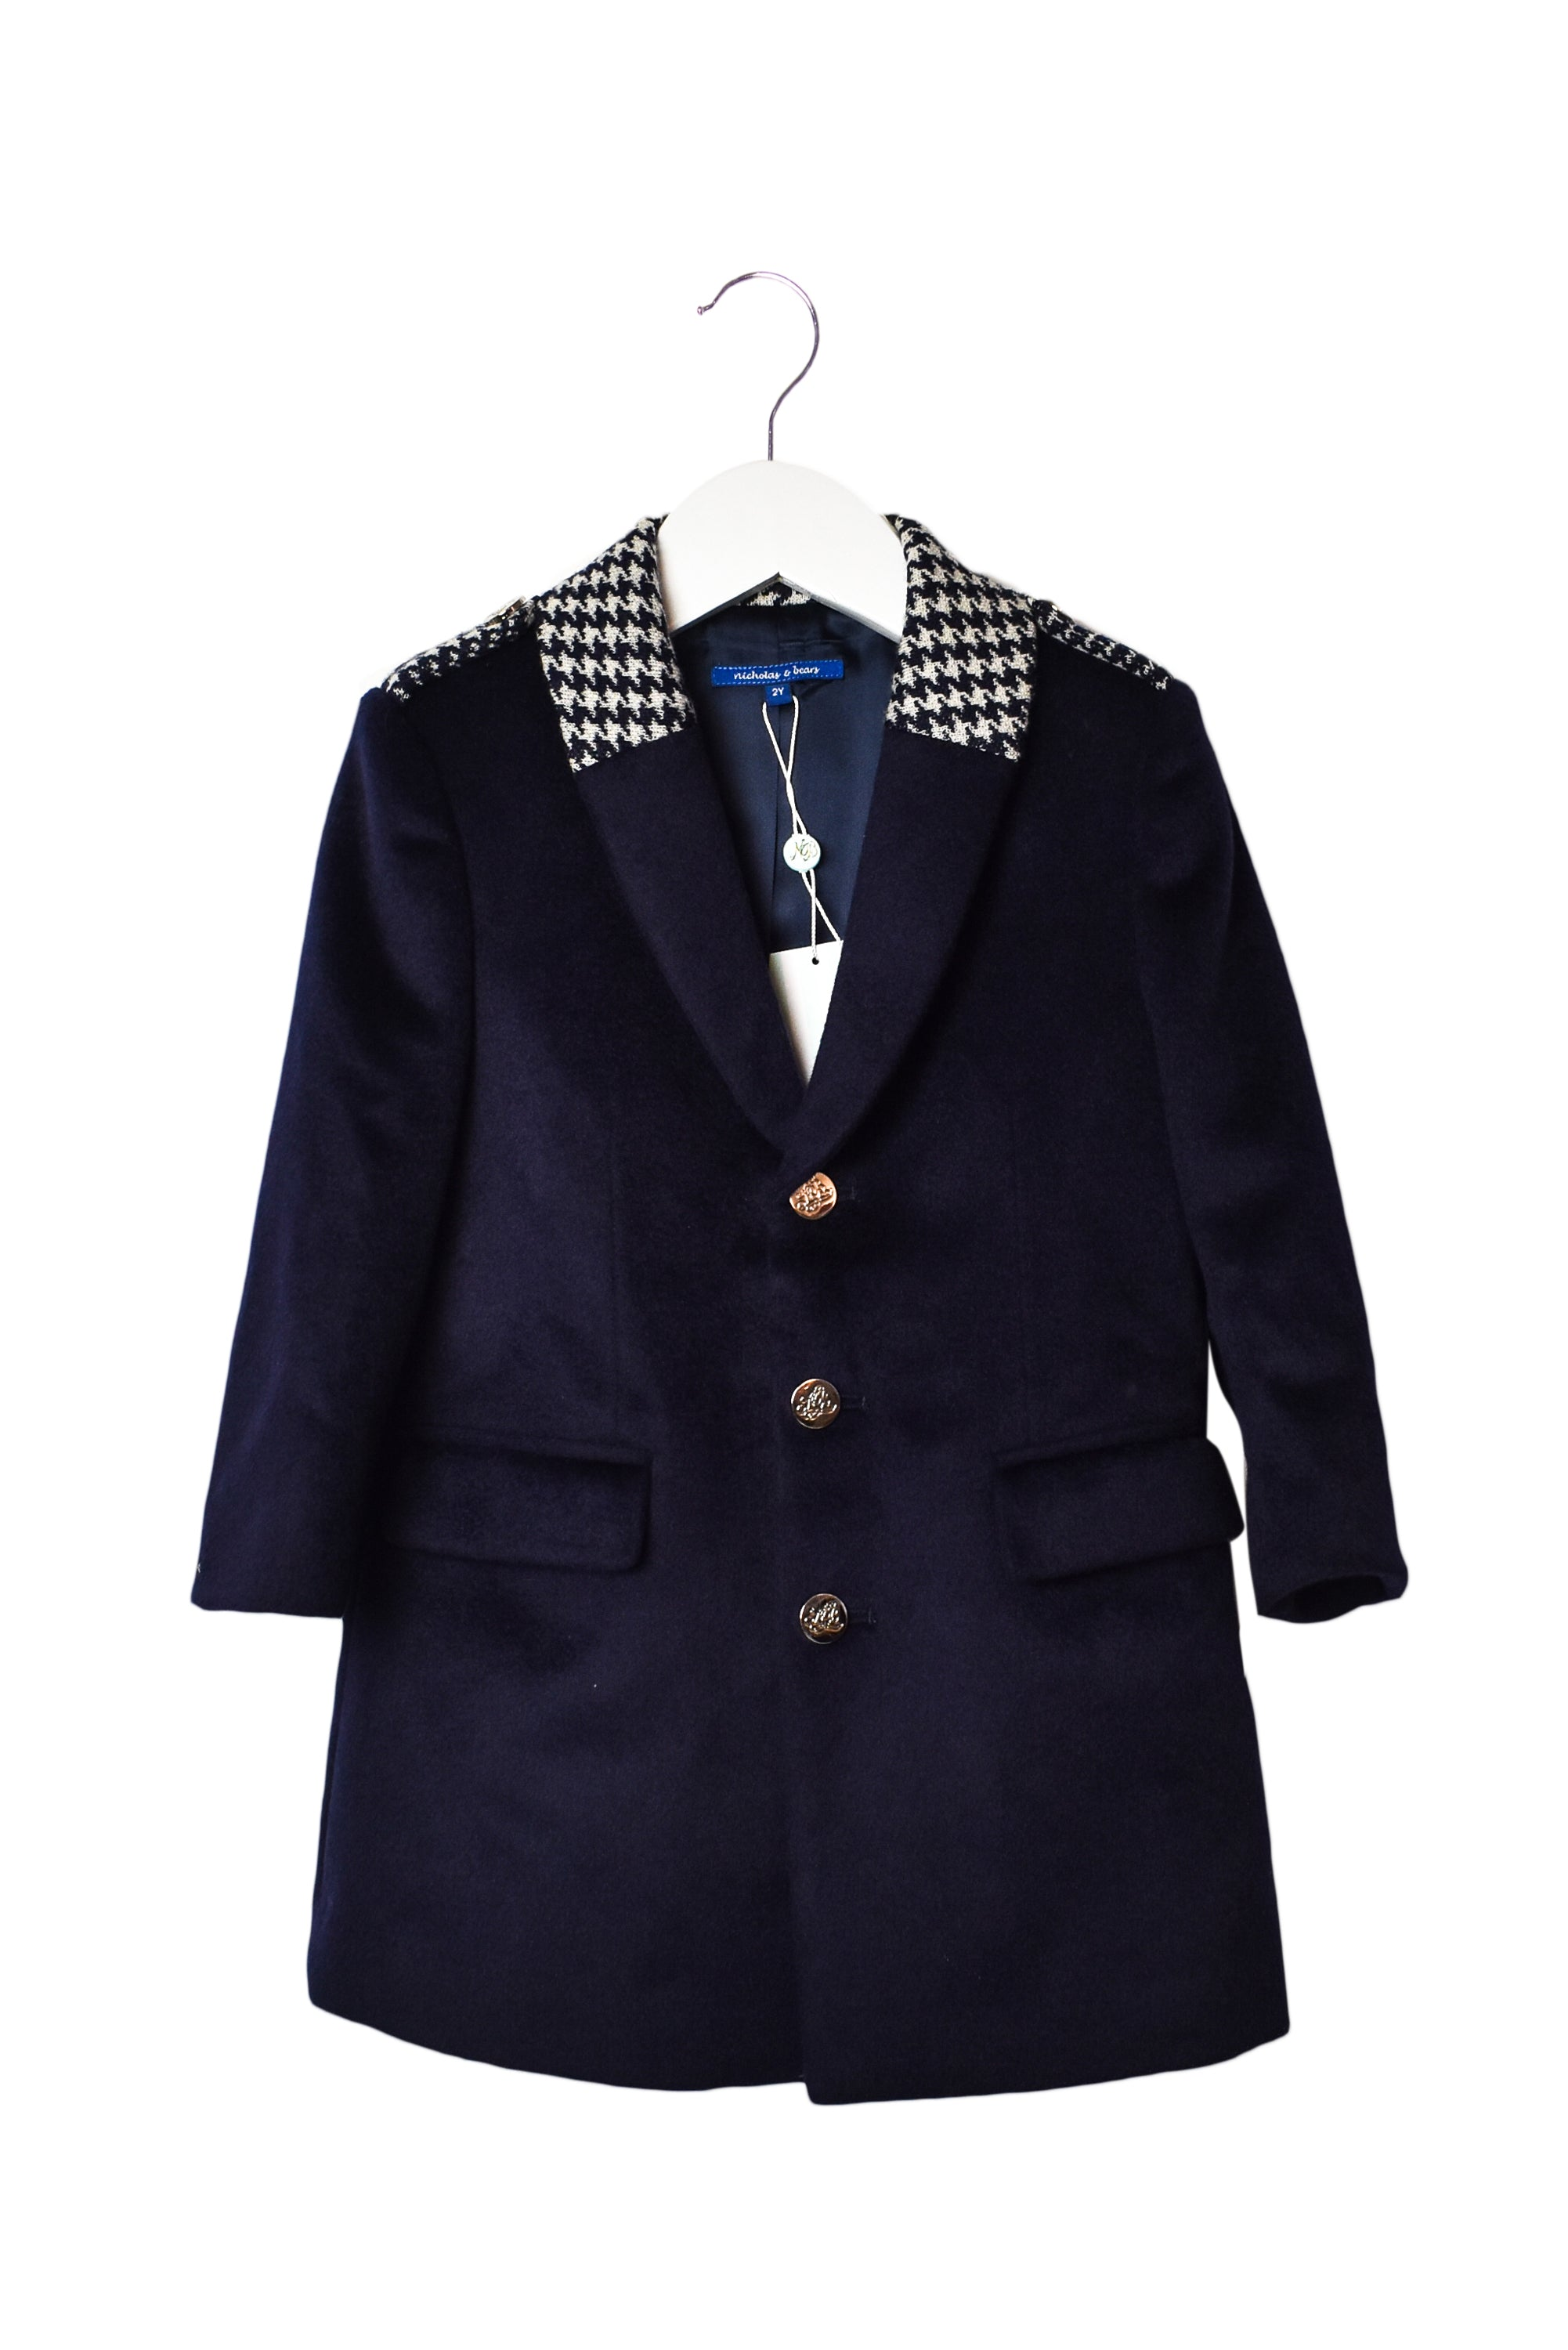 10007821 Nicholas & Bears Kids~ Coat 2T at Retykle